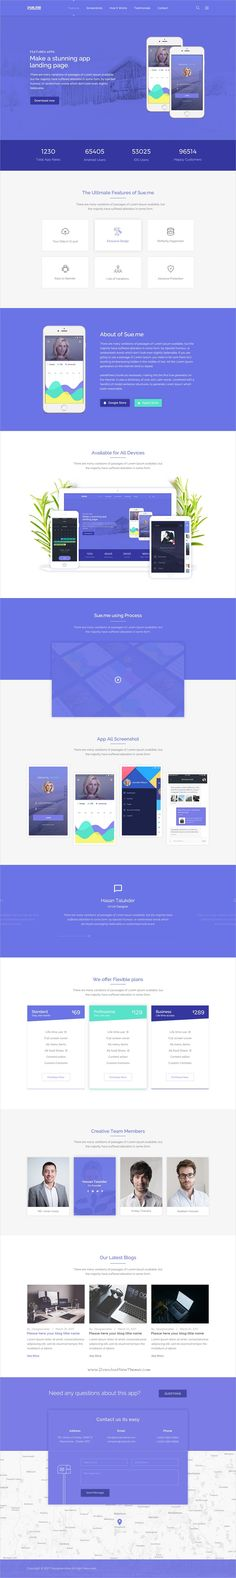 Sueme is clean and modern design multipurpose #PSD template for #creative app #landing page website download now➩ https://themeforest.net/item/sueme-multipurpose-landing-psd-template/19852521?ref=Datasata